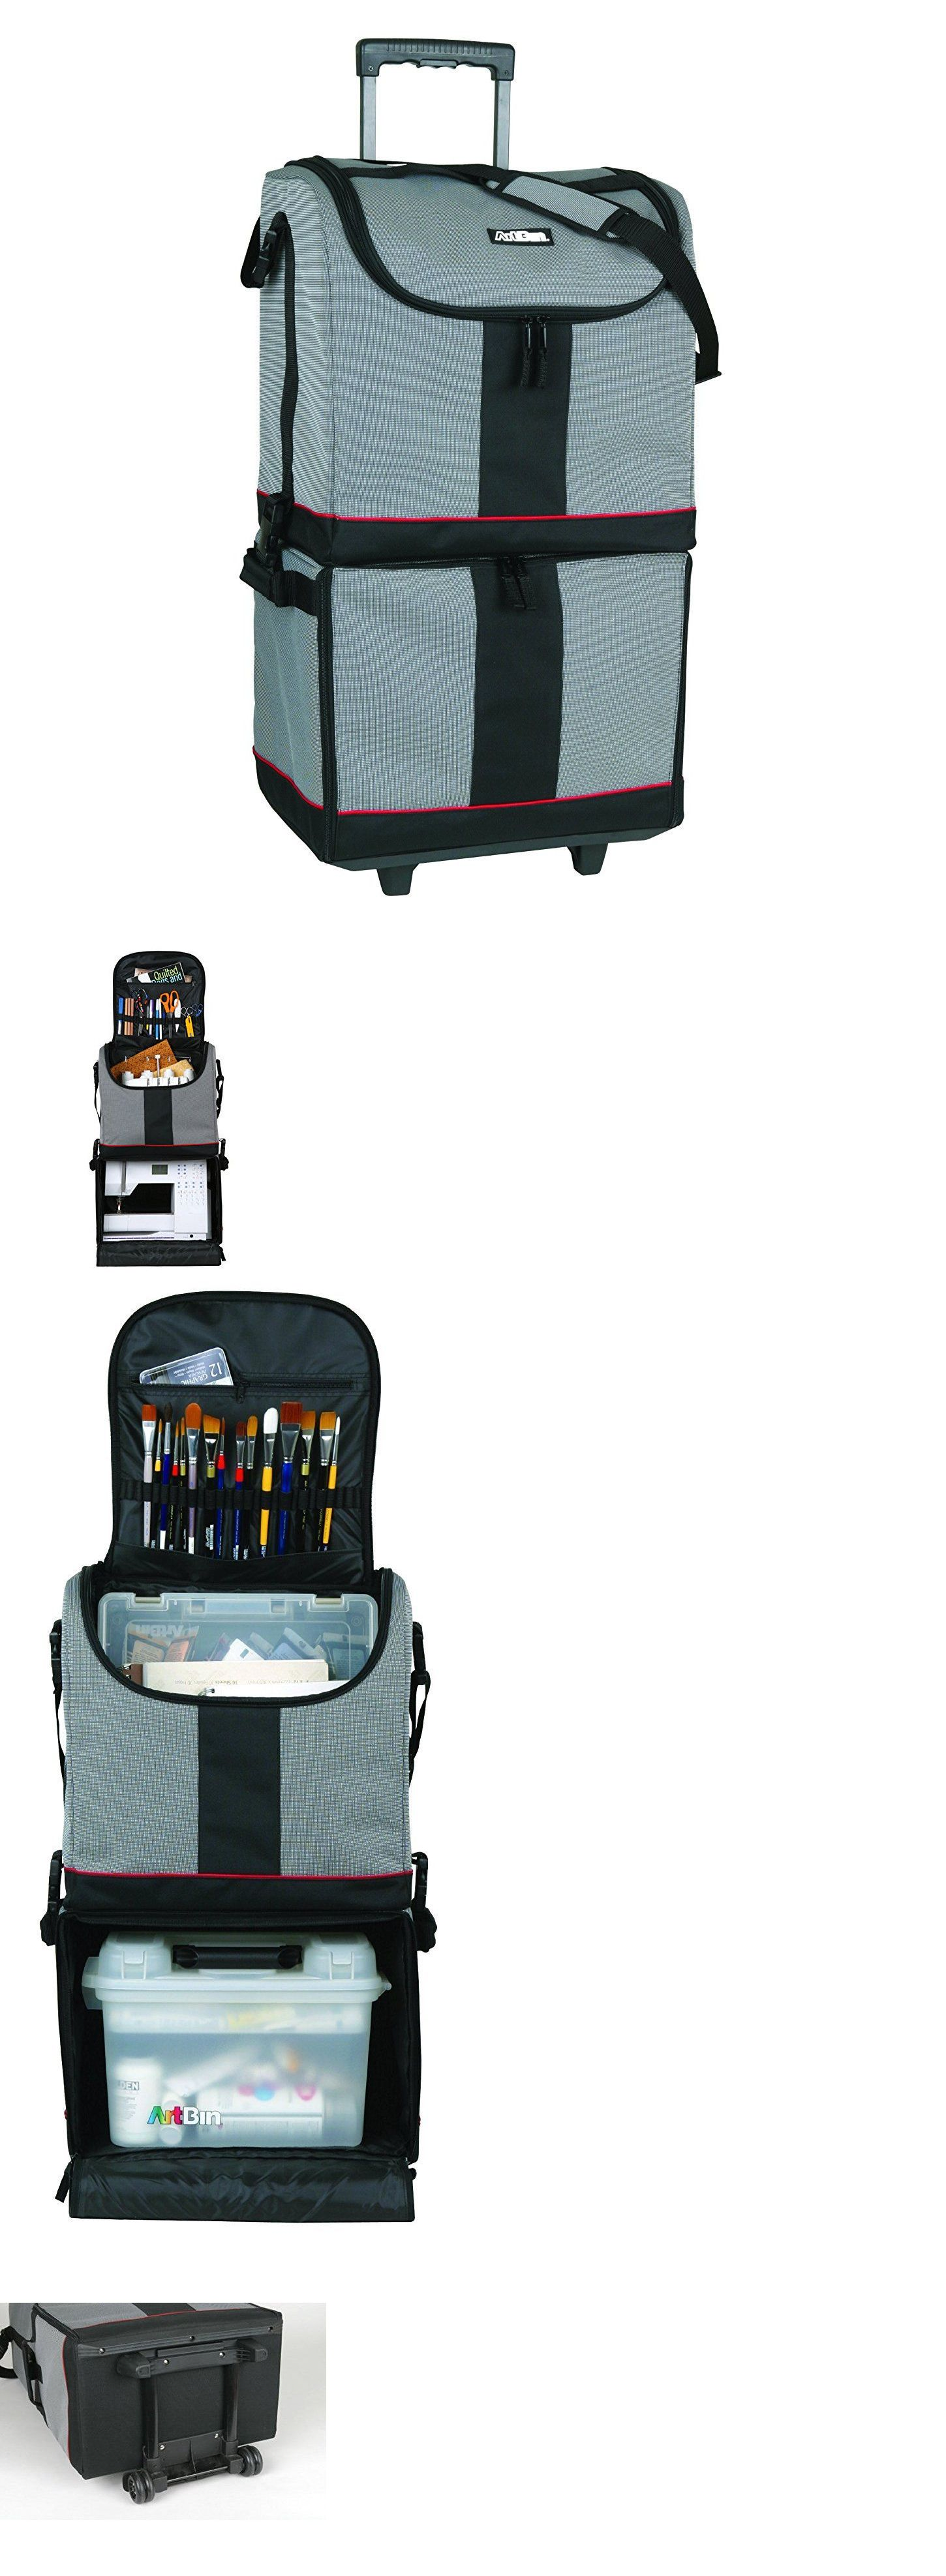 4053b5331b Sewing Boxes and Storage 83965  Sewing Kit Mobile Storage Bag Project  Organizer Trolley Rolling Art Craft Tote -  BUY IT NOW ONLY   105.99 on  eBay!